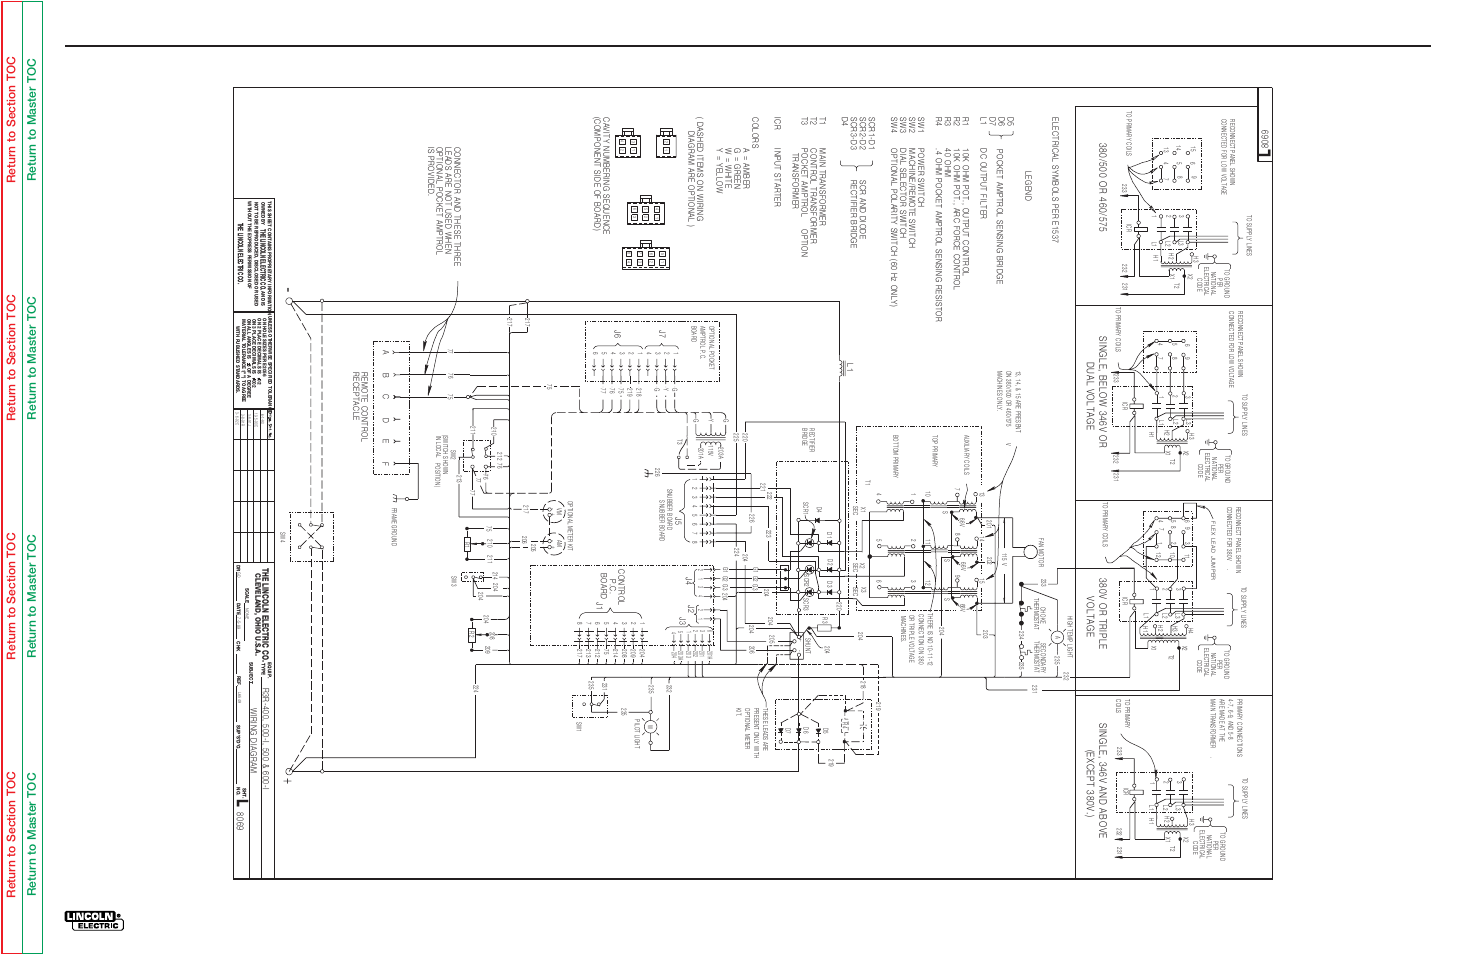 Electrical Diagrams Lincoln Electric Idealarc R3r 500 User Manual 225 S Wiring Diagram Page 102 108